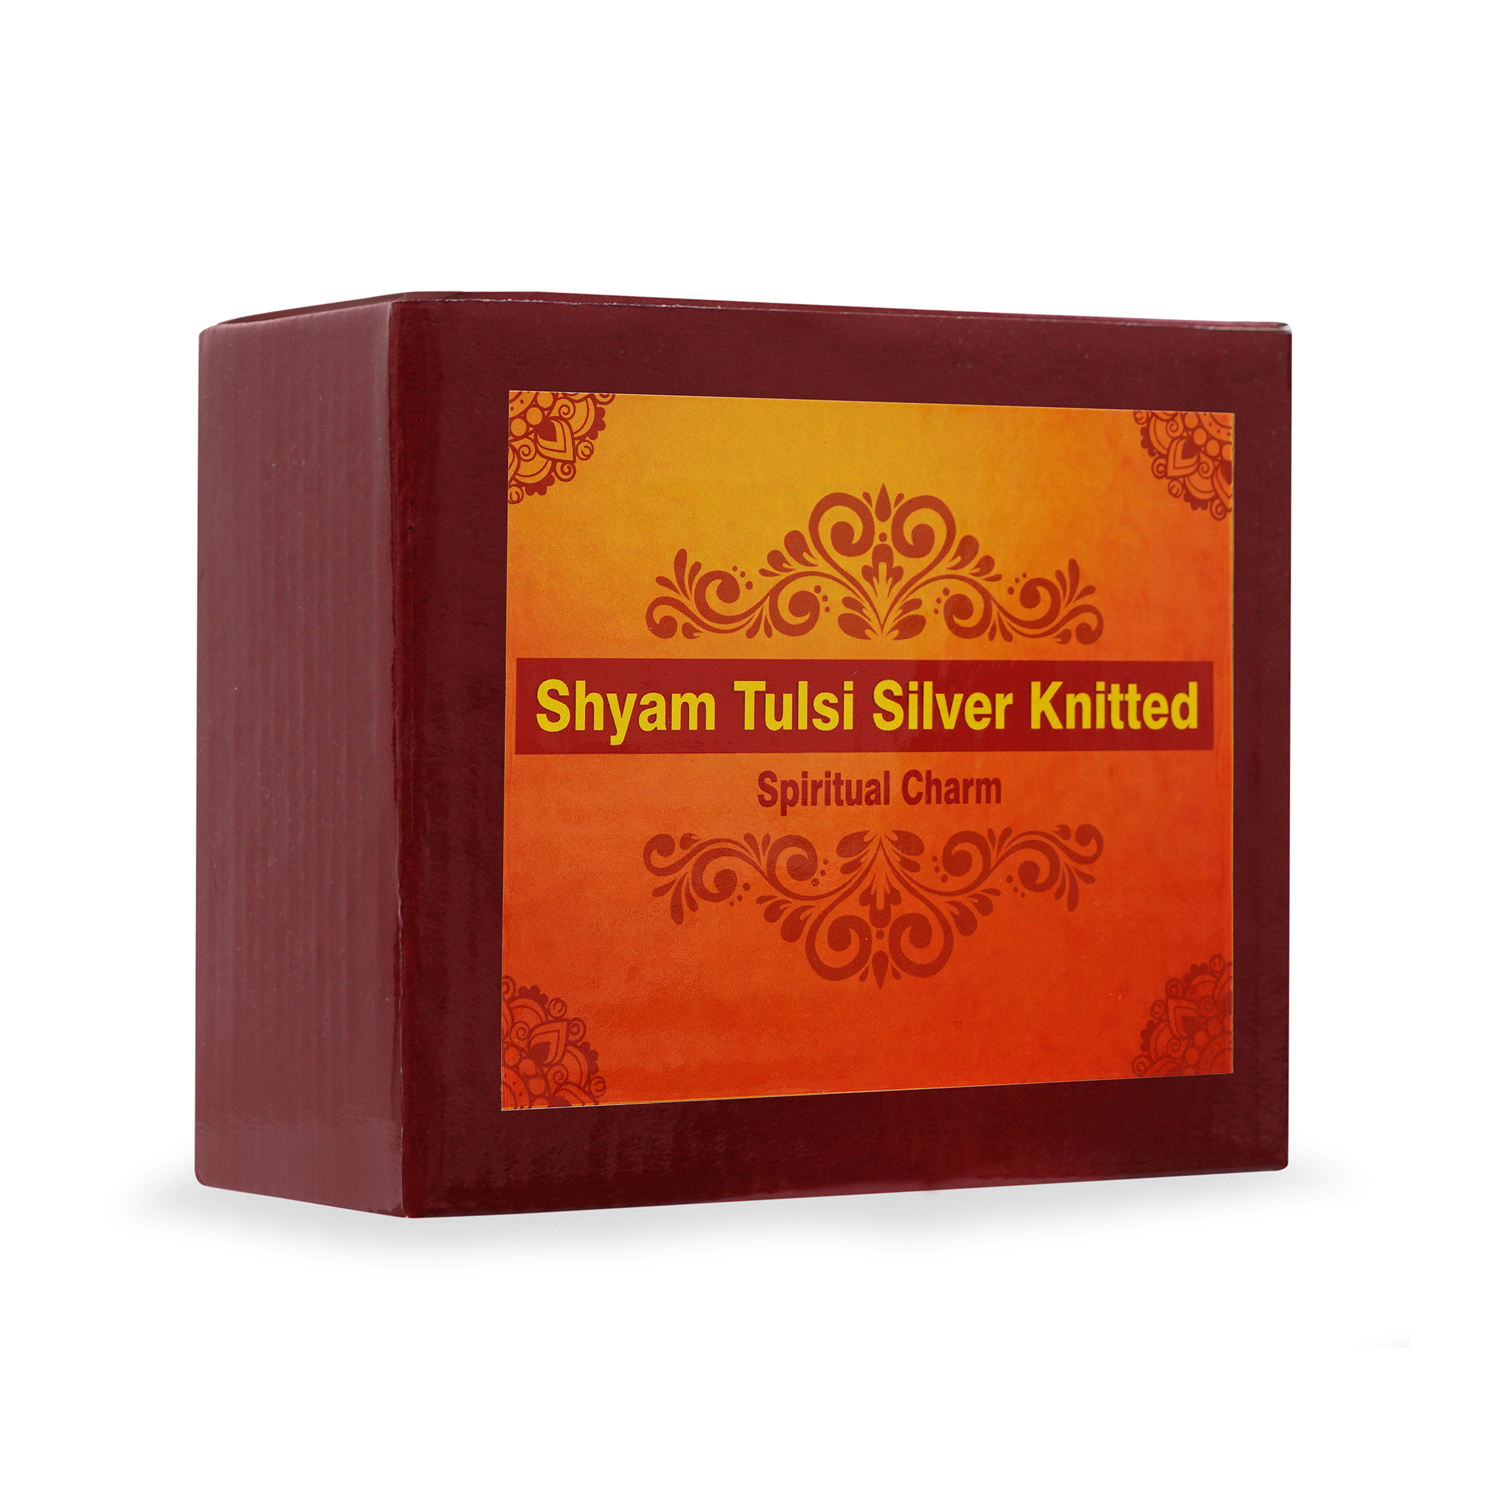 Shyam Tulsi Silver Knitted